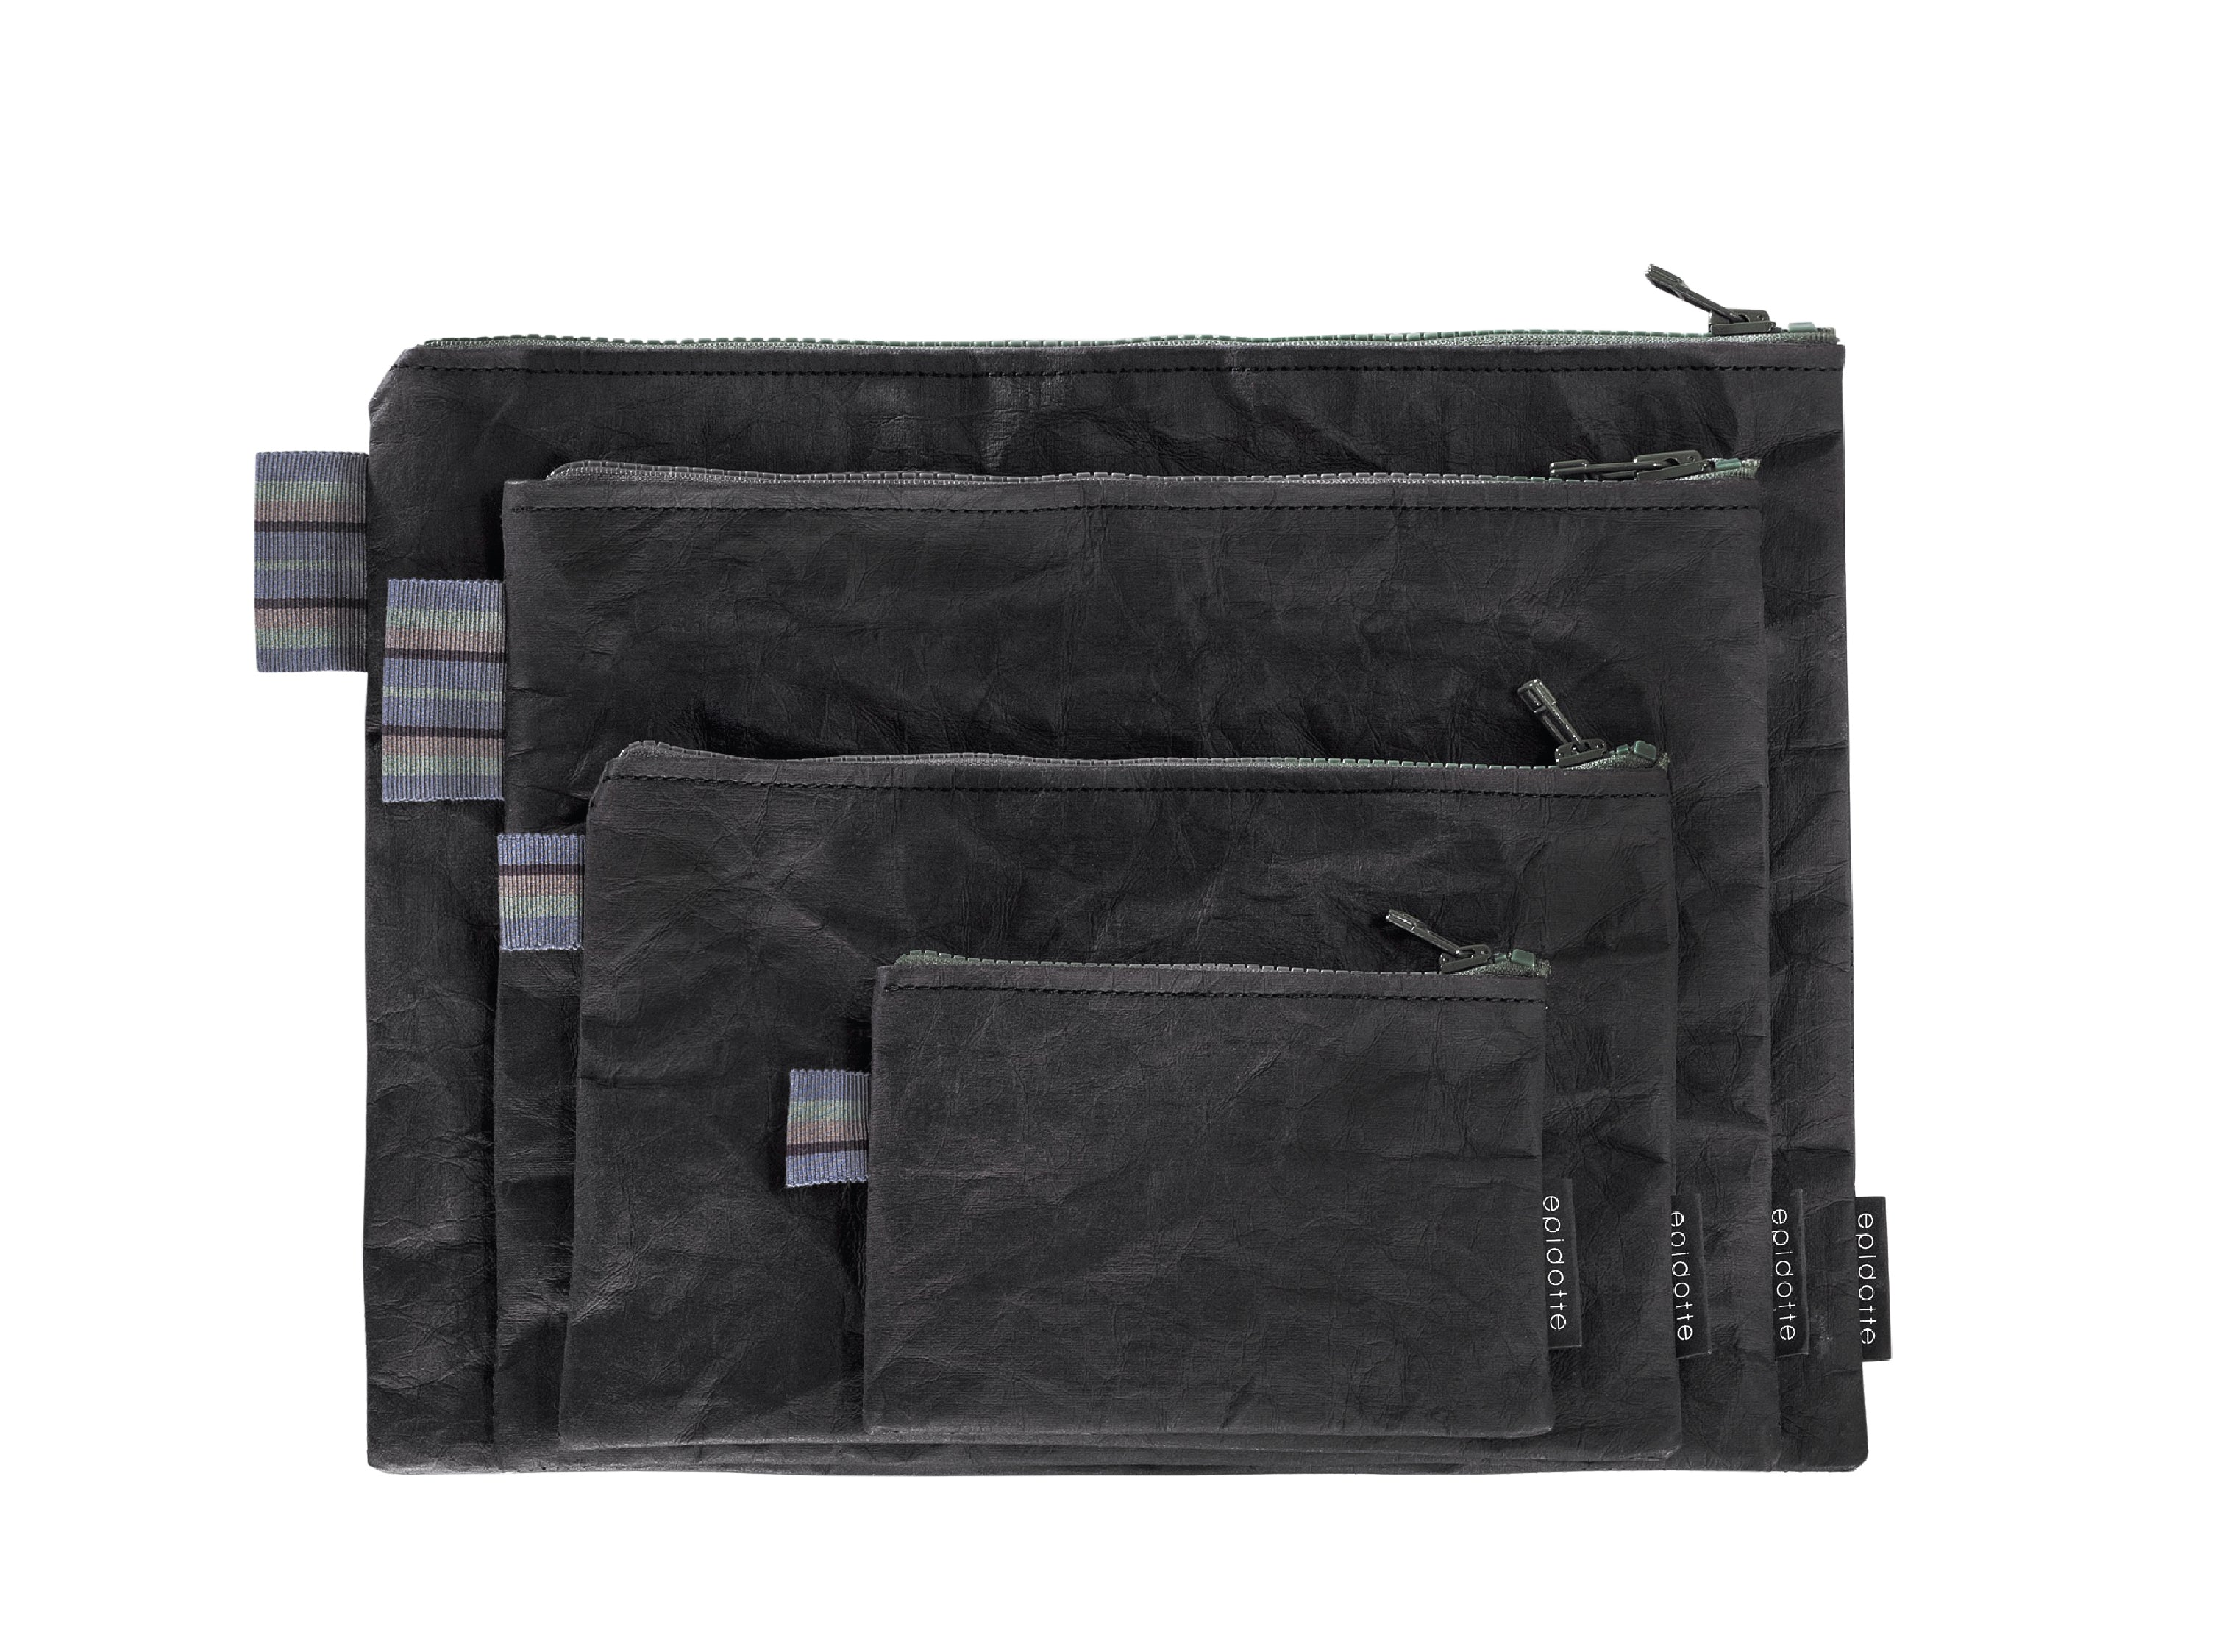 Picture of Epidotte POUCH BAG BLACK LARGE EL ÇANTASI